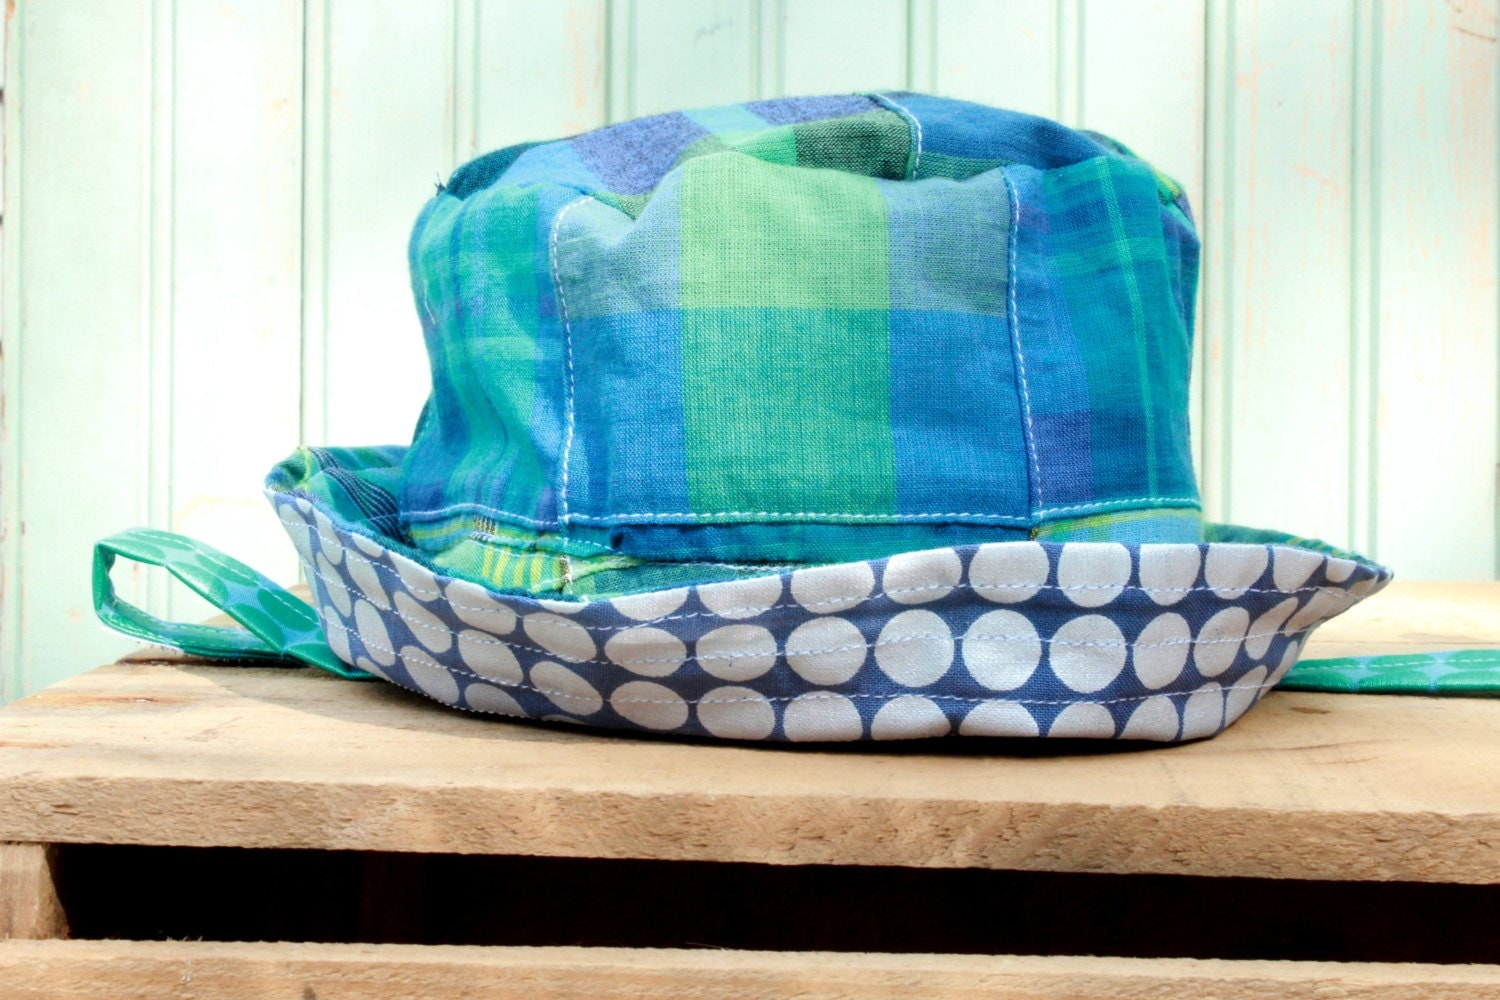 Baby Sun Hat Turquoise Madras Bucket Cap Newborn to 6 Months - Reversible Trick Sun Hat Country Style - worthygoods